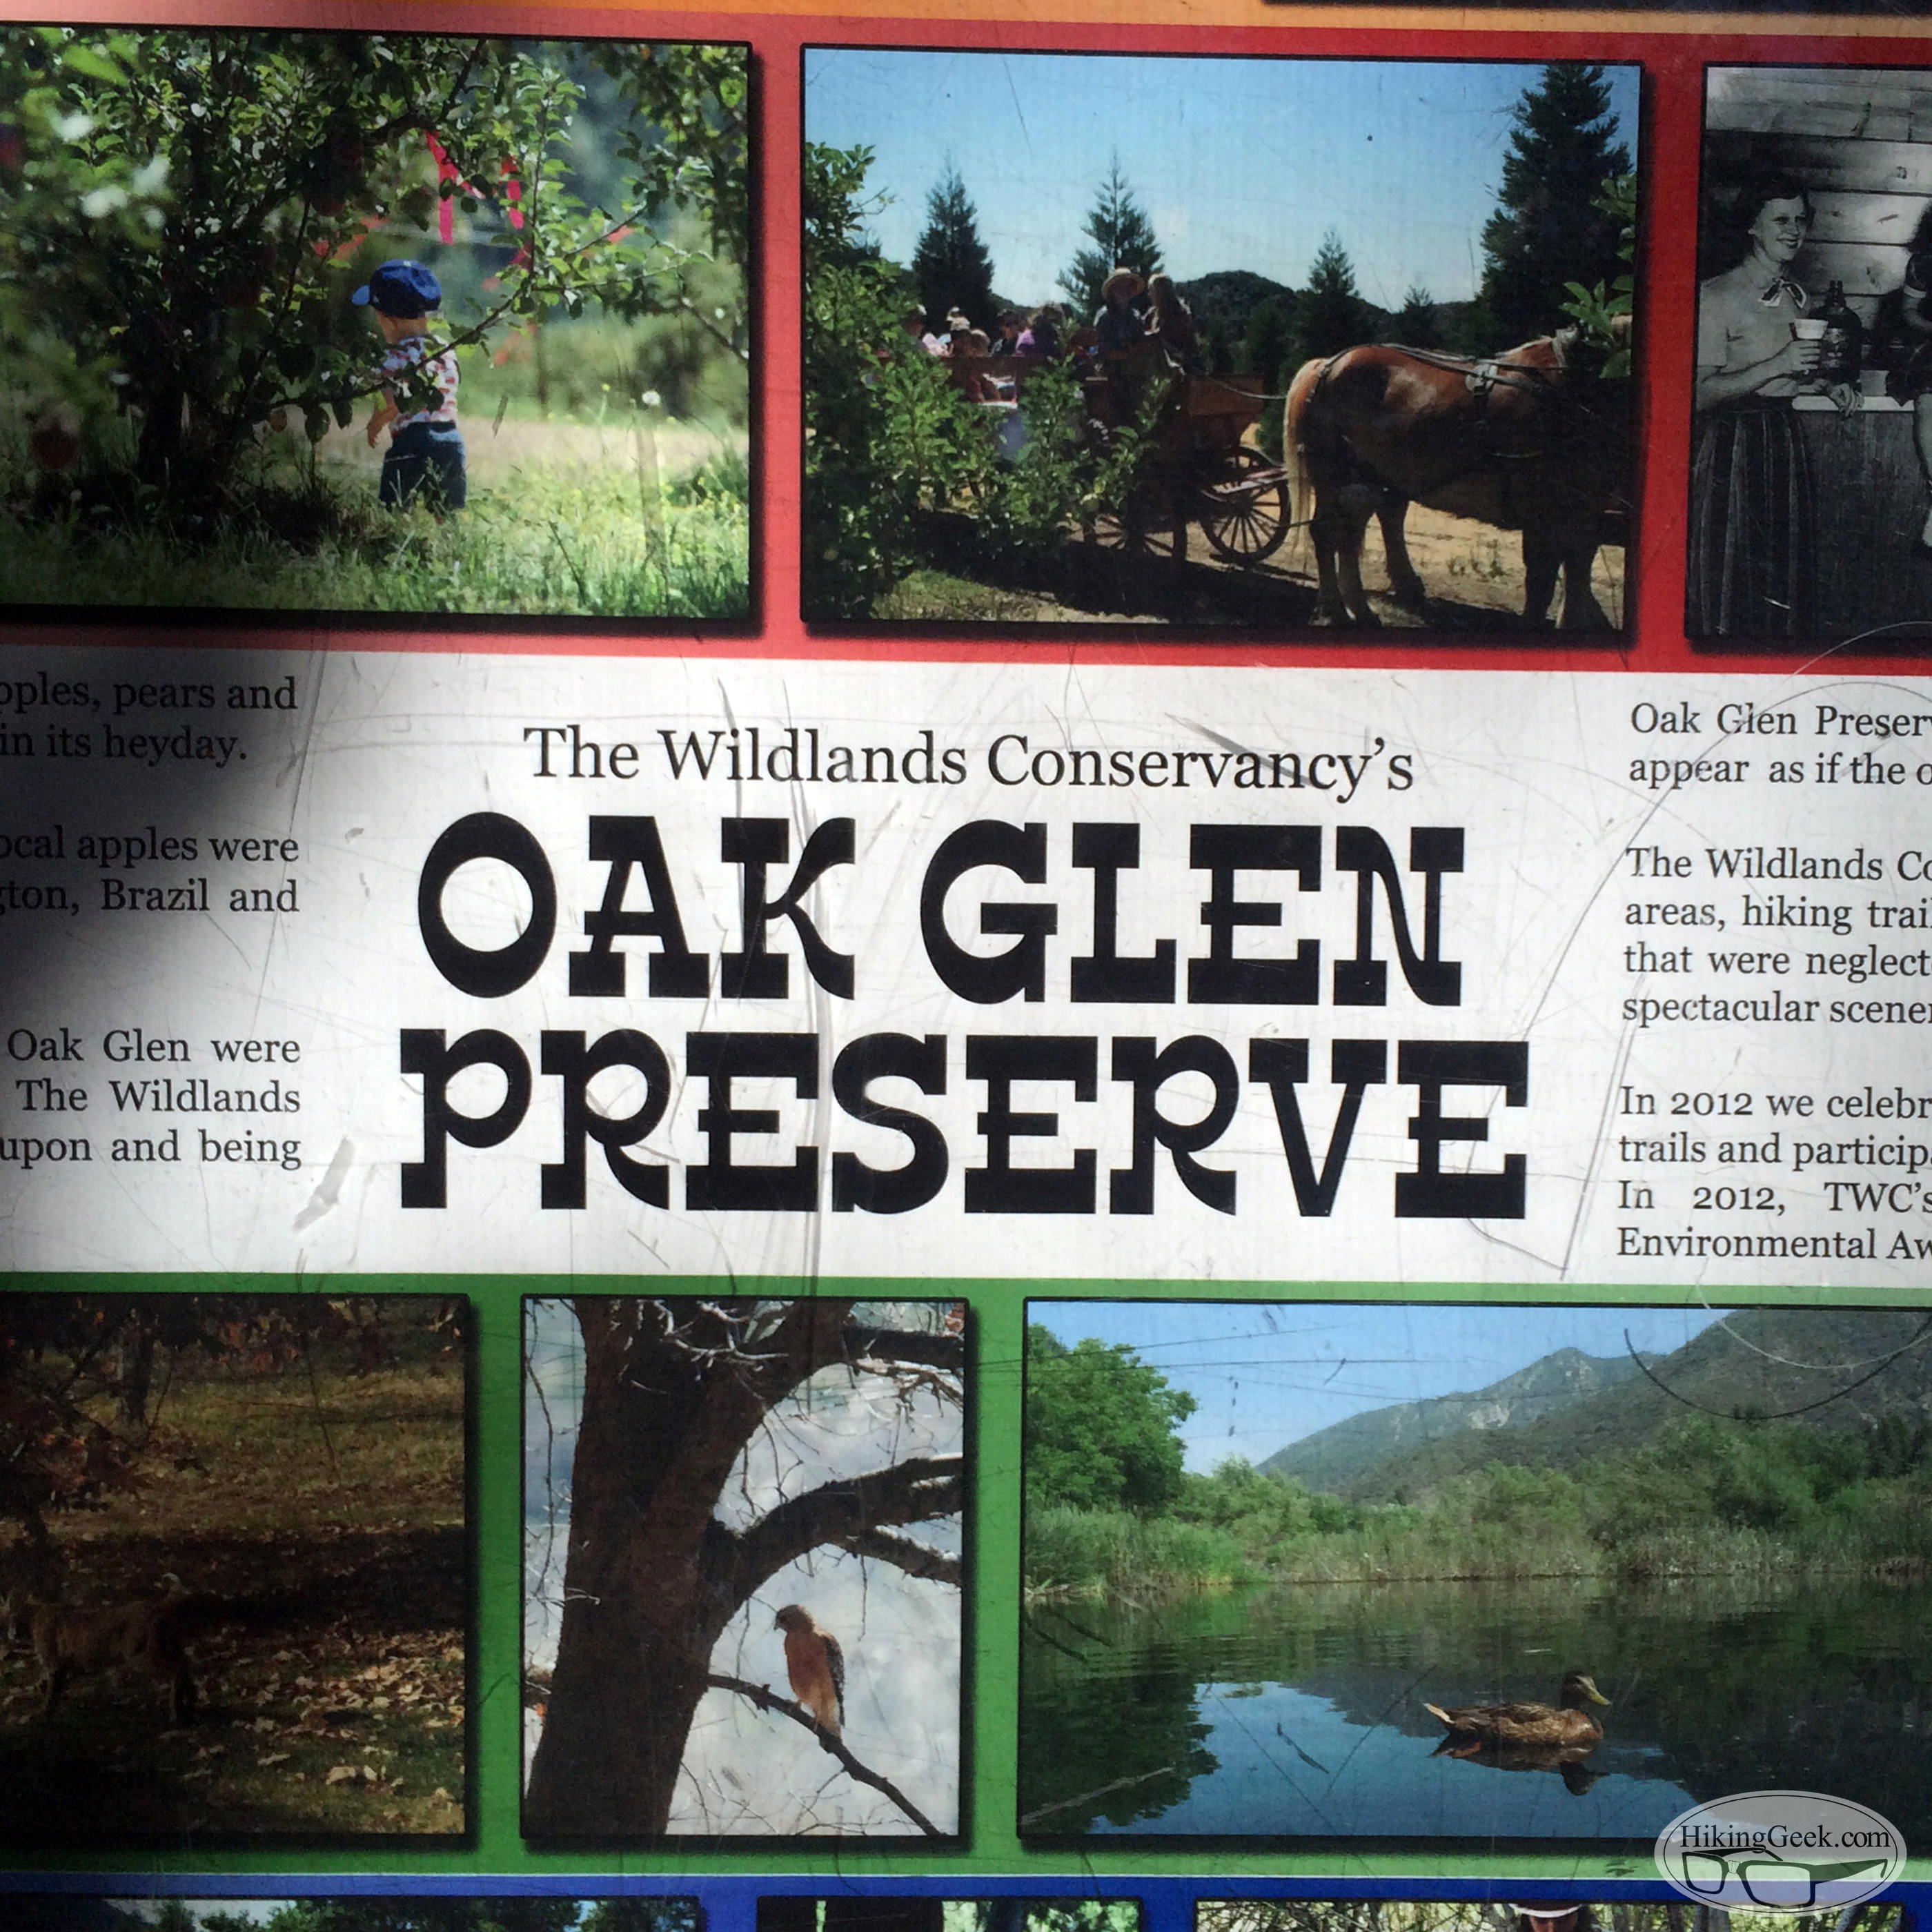 Hiking with Kids: Oak Glen Preserve, September 5 2015